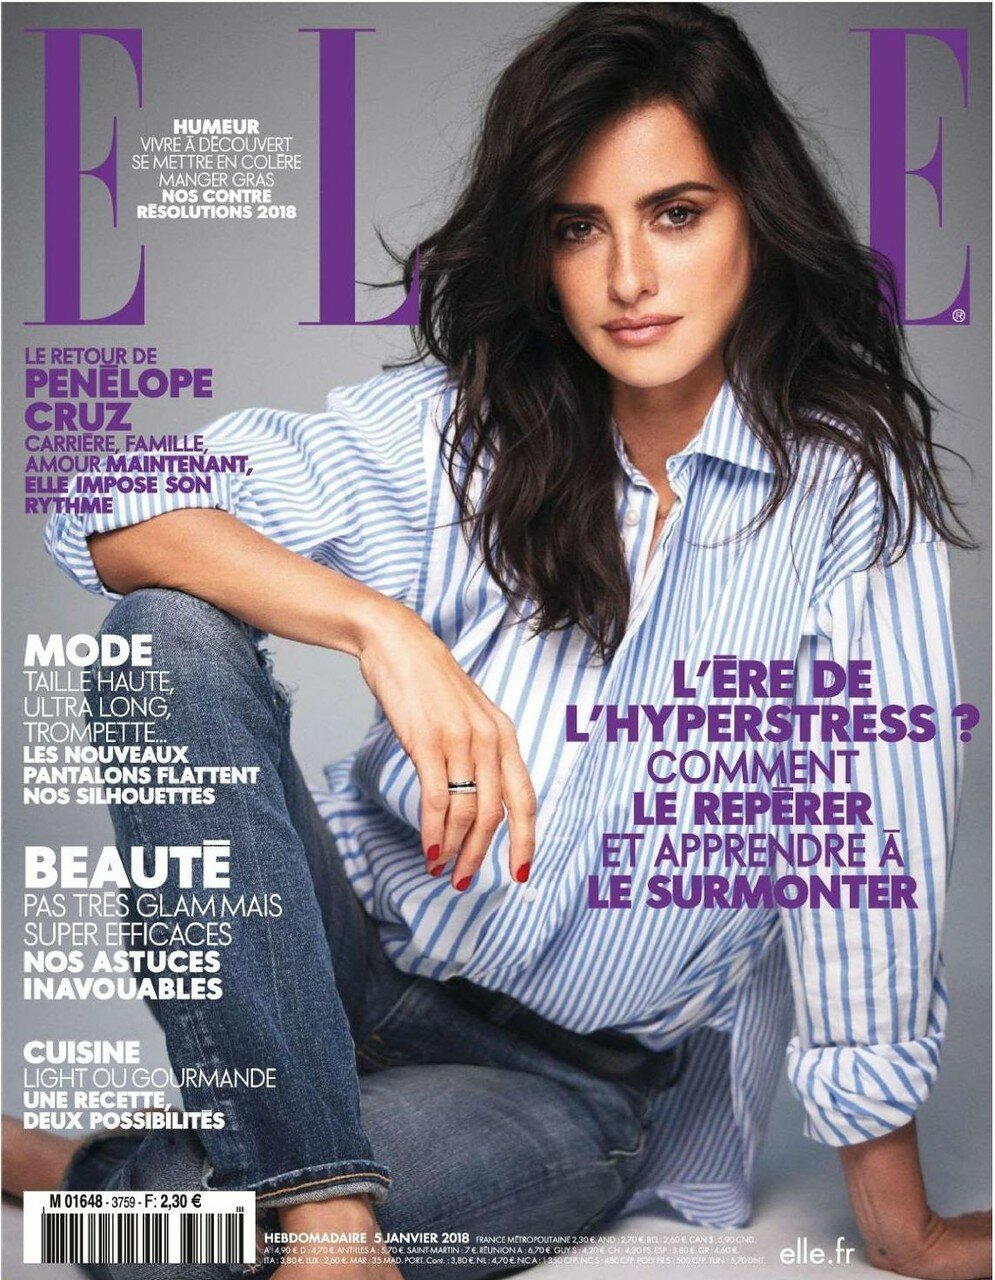 penelope-cruz-in-elle-magazine-france-january-2018-9.jpg